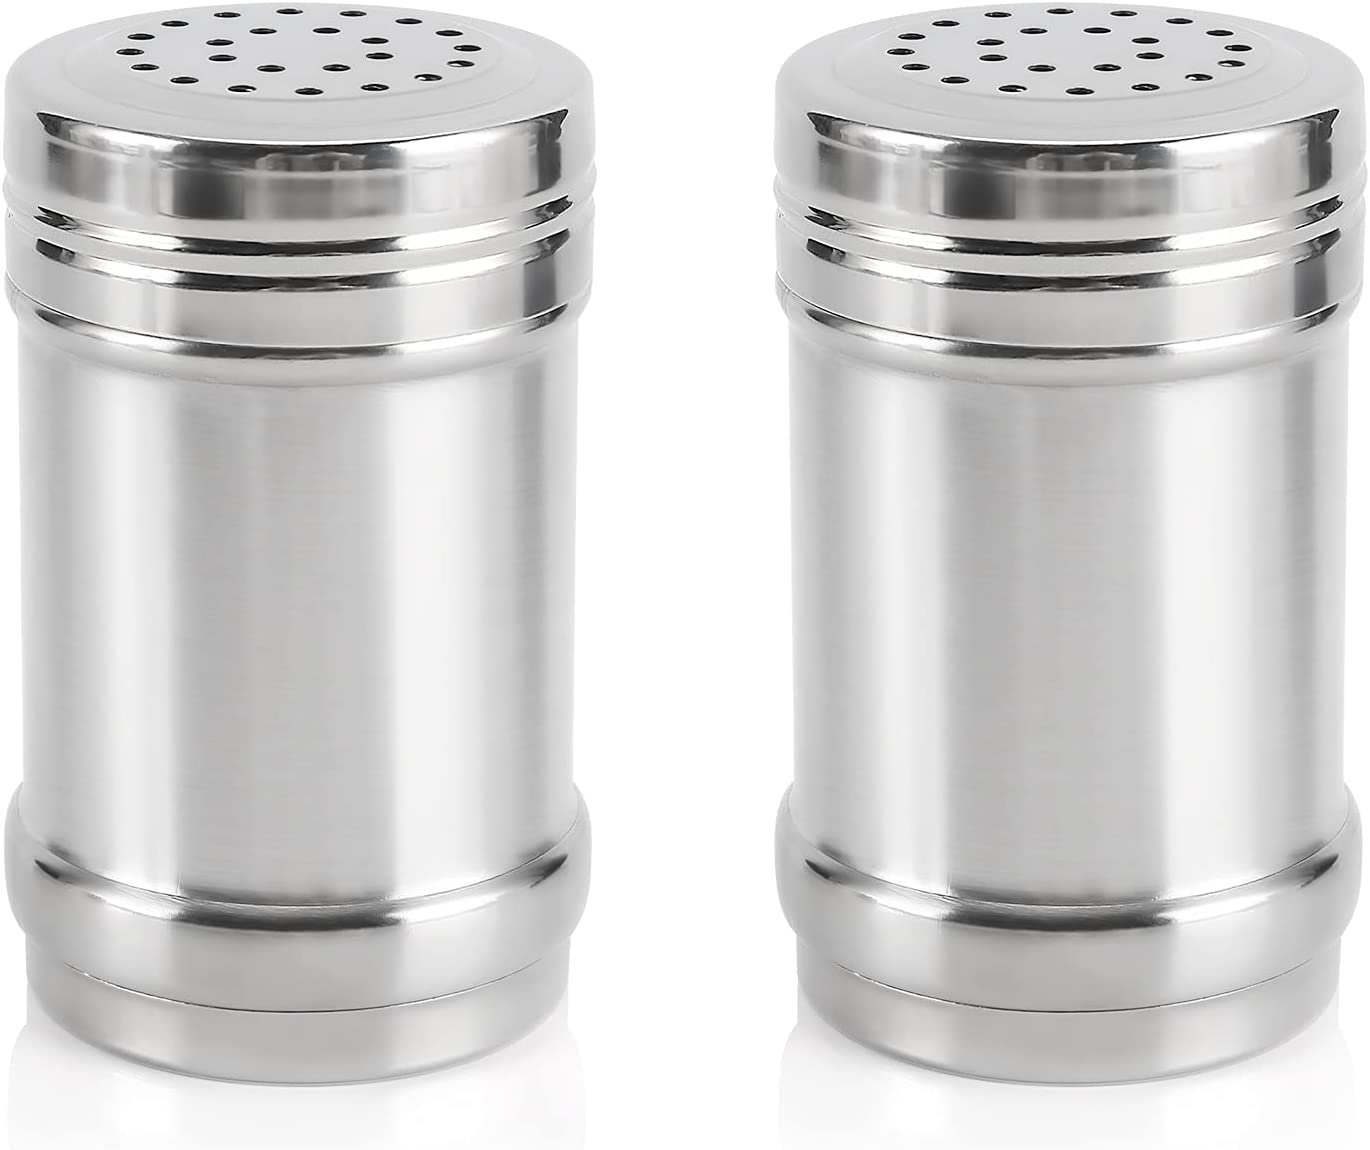 Accmor 2pcs Special Campaign Salt and Pepper Steel Max 63% OFF Shakers Shaker Stainless for